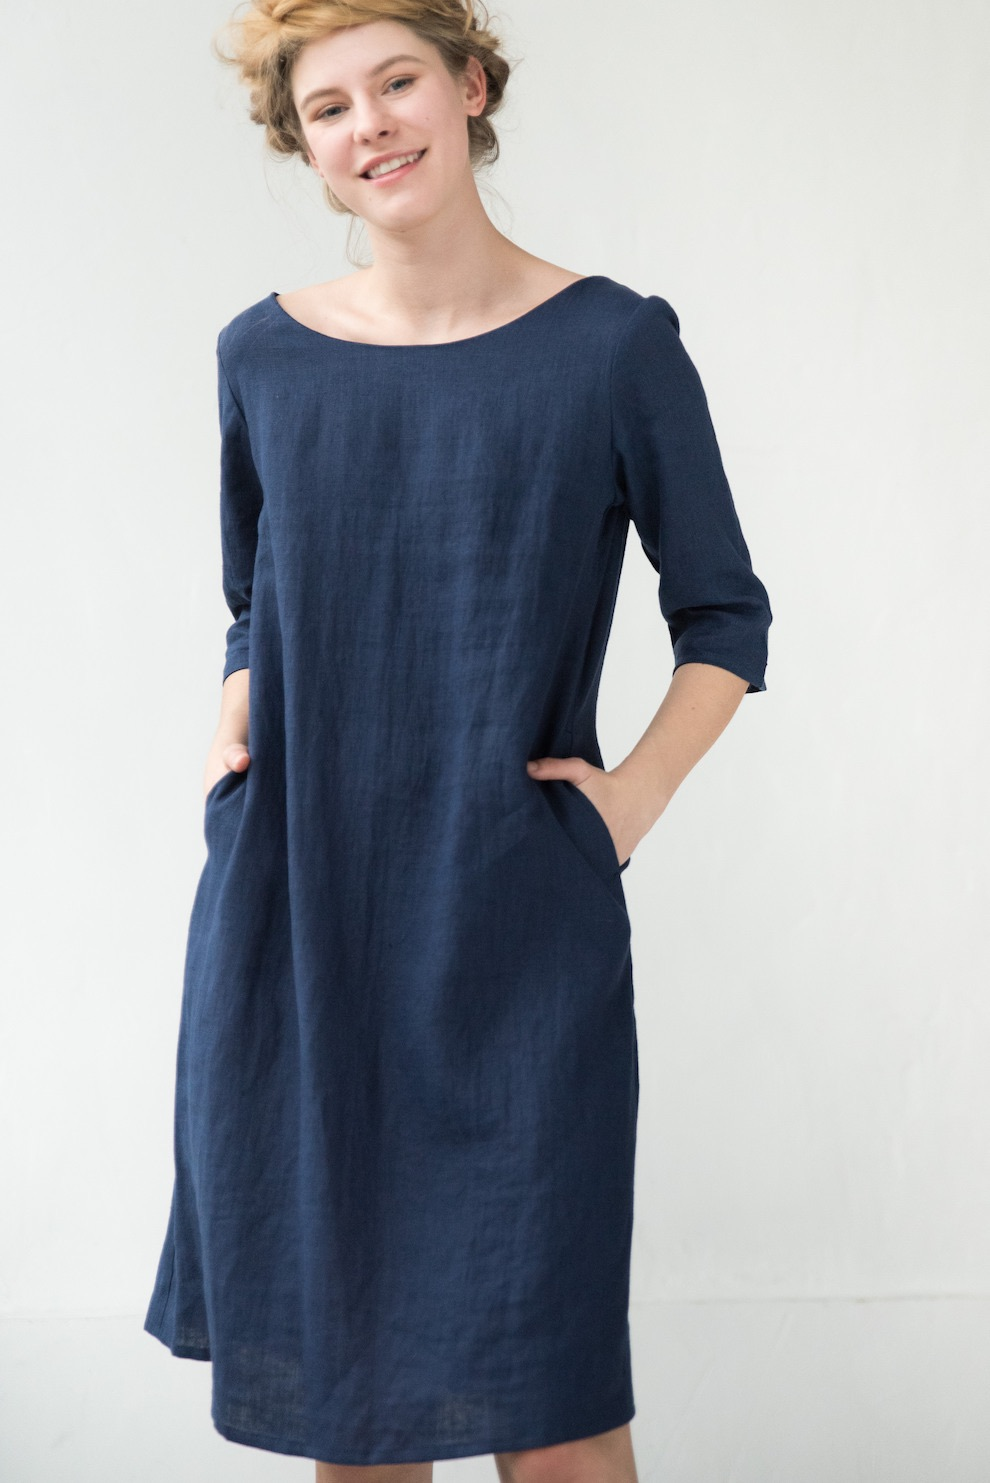 Linen tunic deep blue dress ALICE